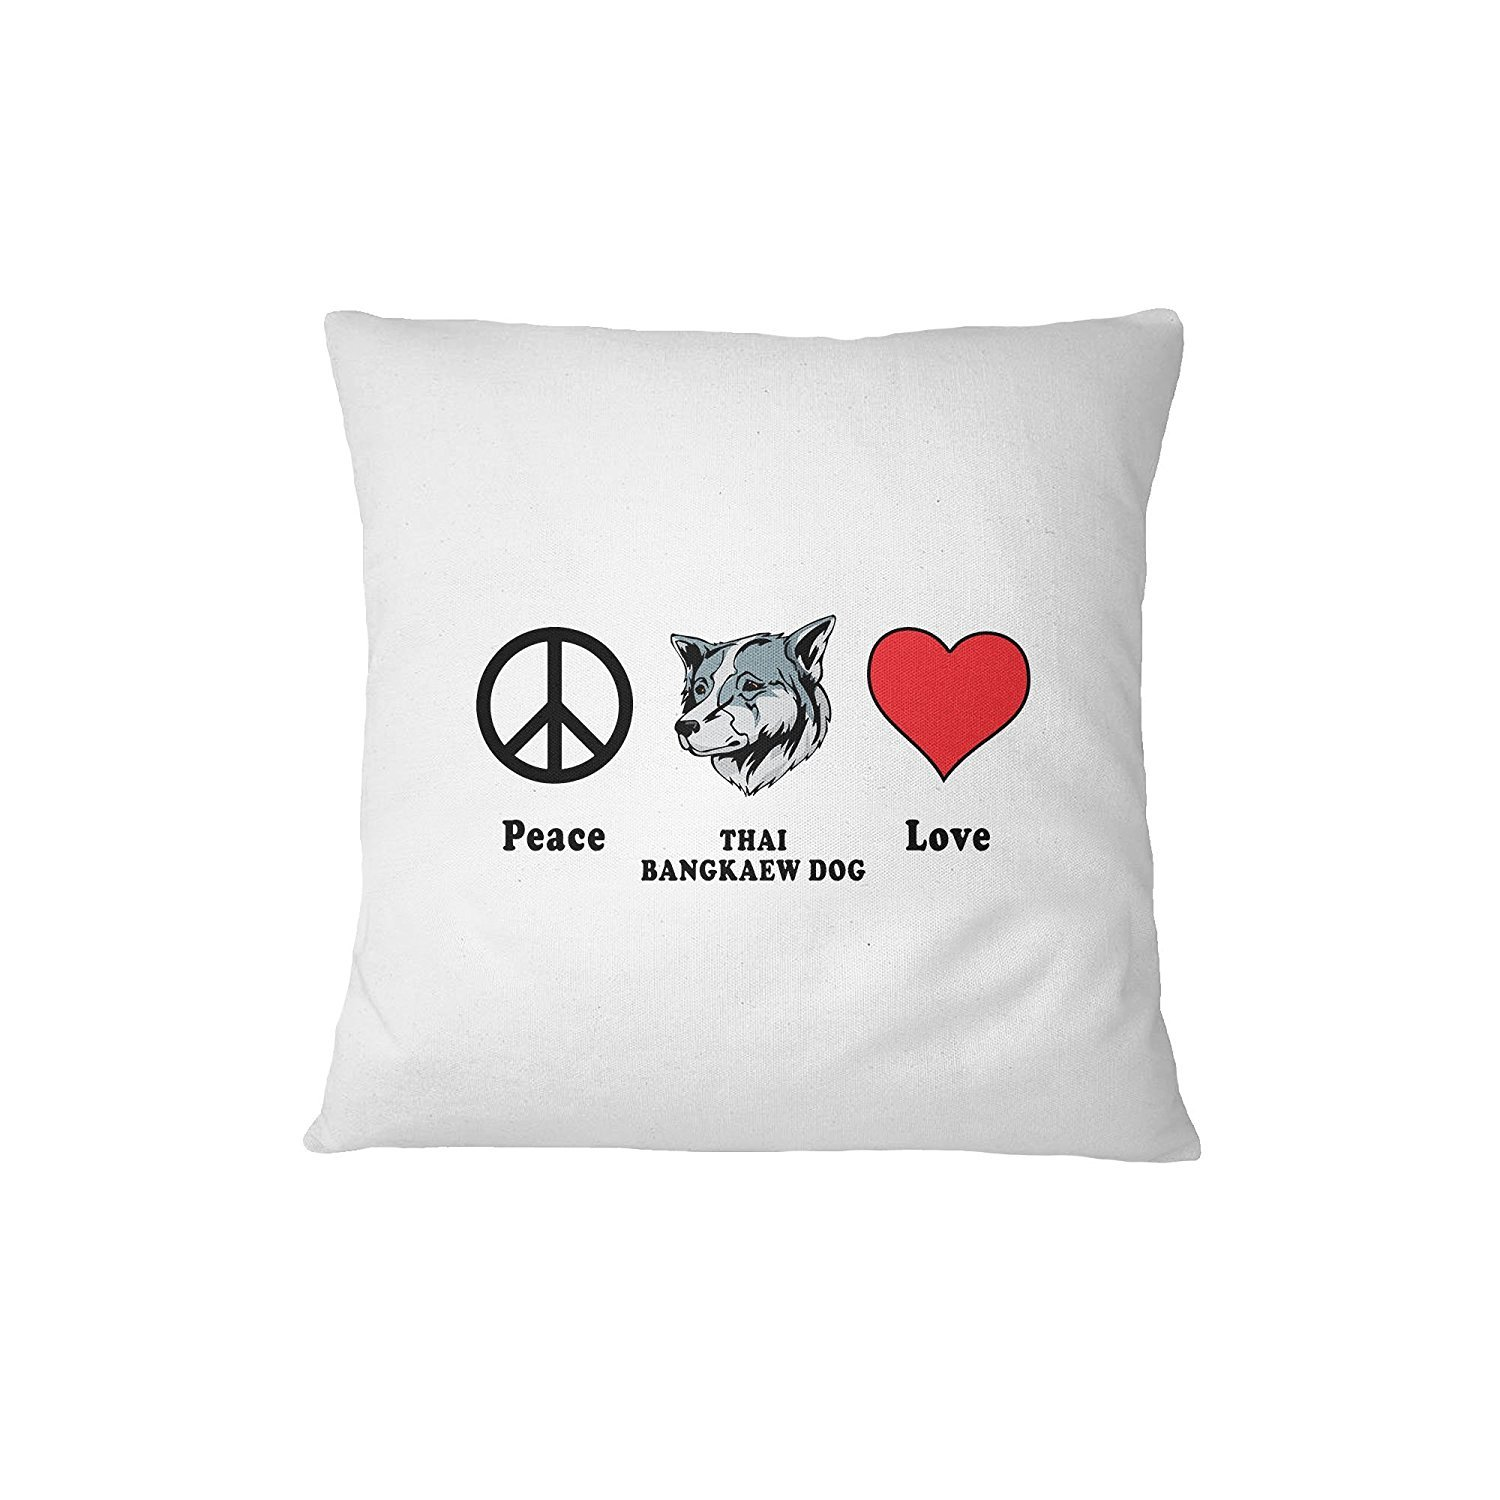 THAI BANGKAEW DOG Peace Love Sofa Bed Home Decor Pillow Cover Cover Only ArtsLifes